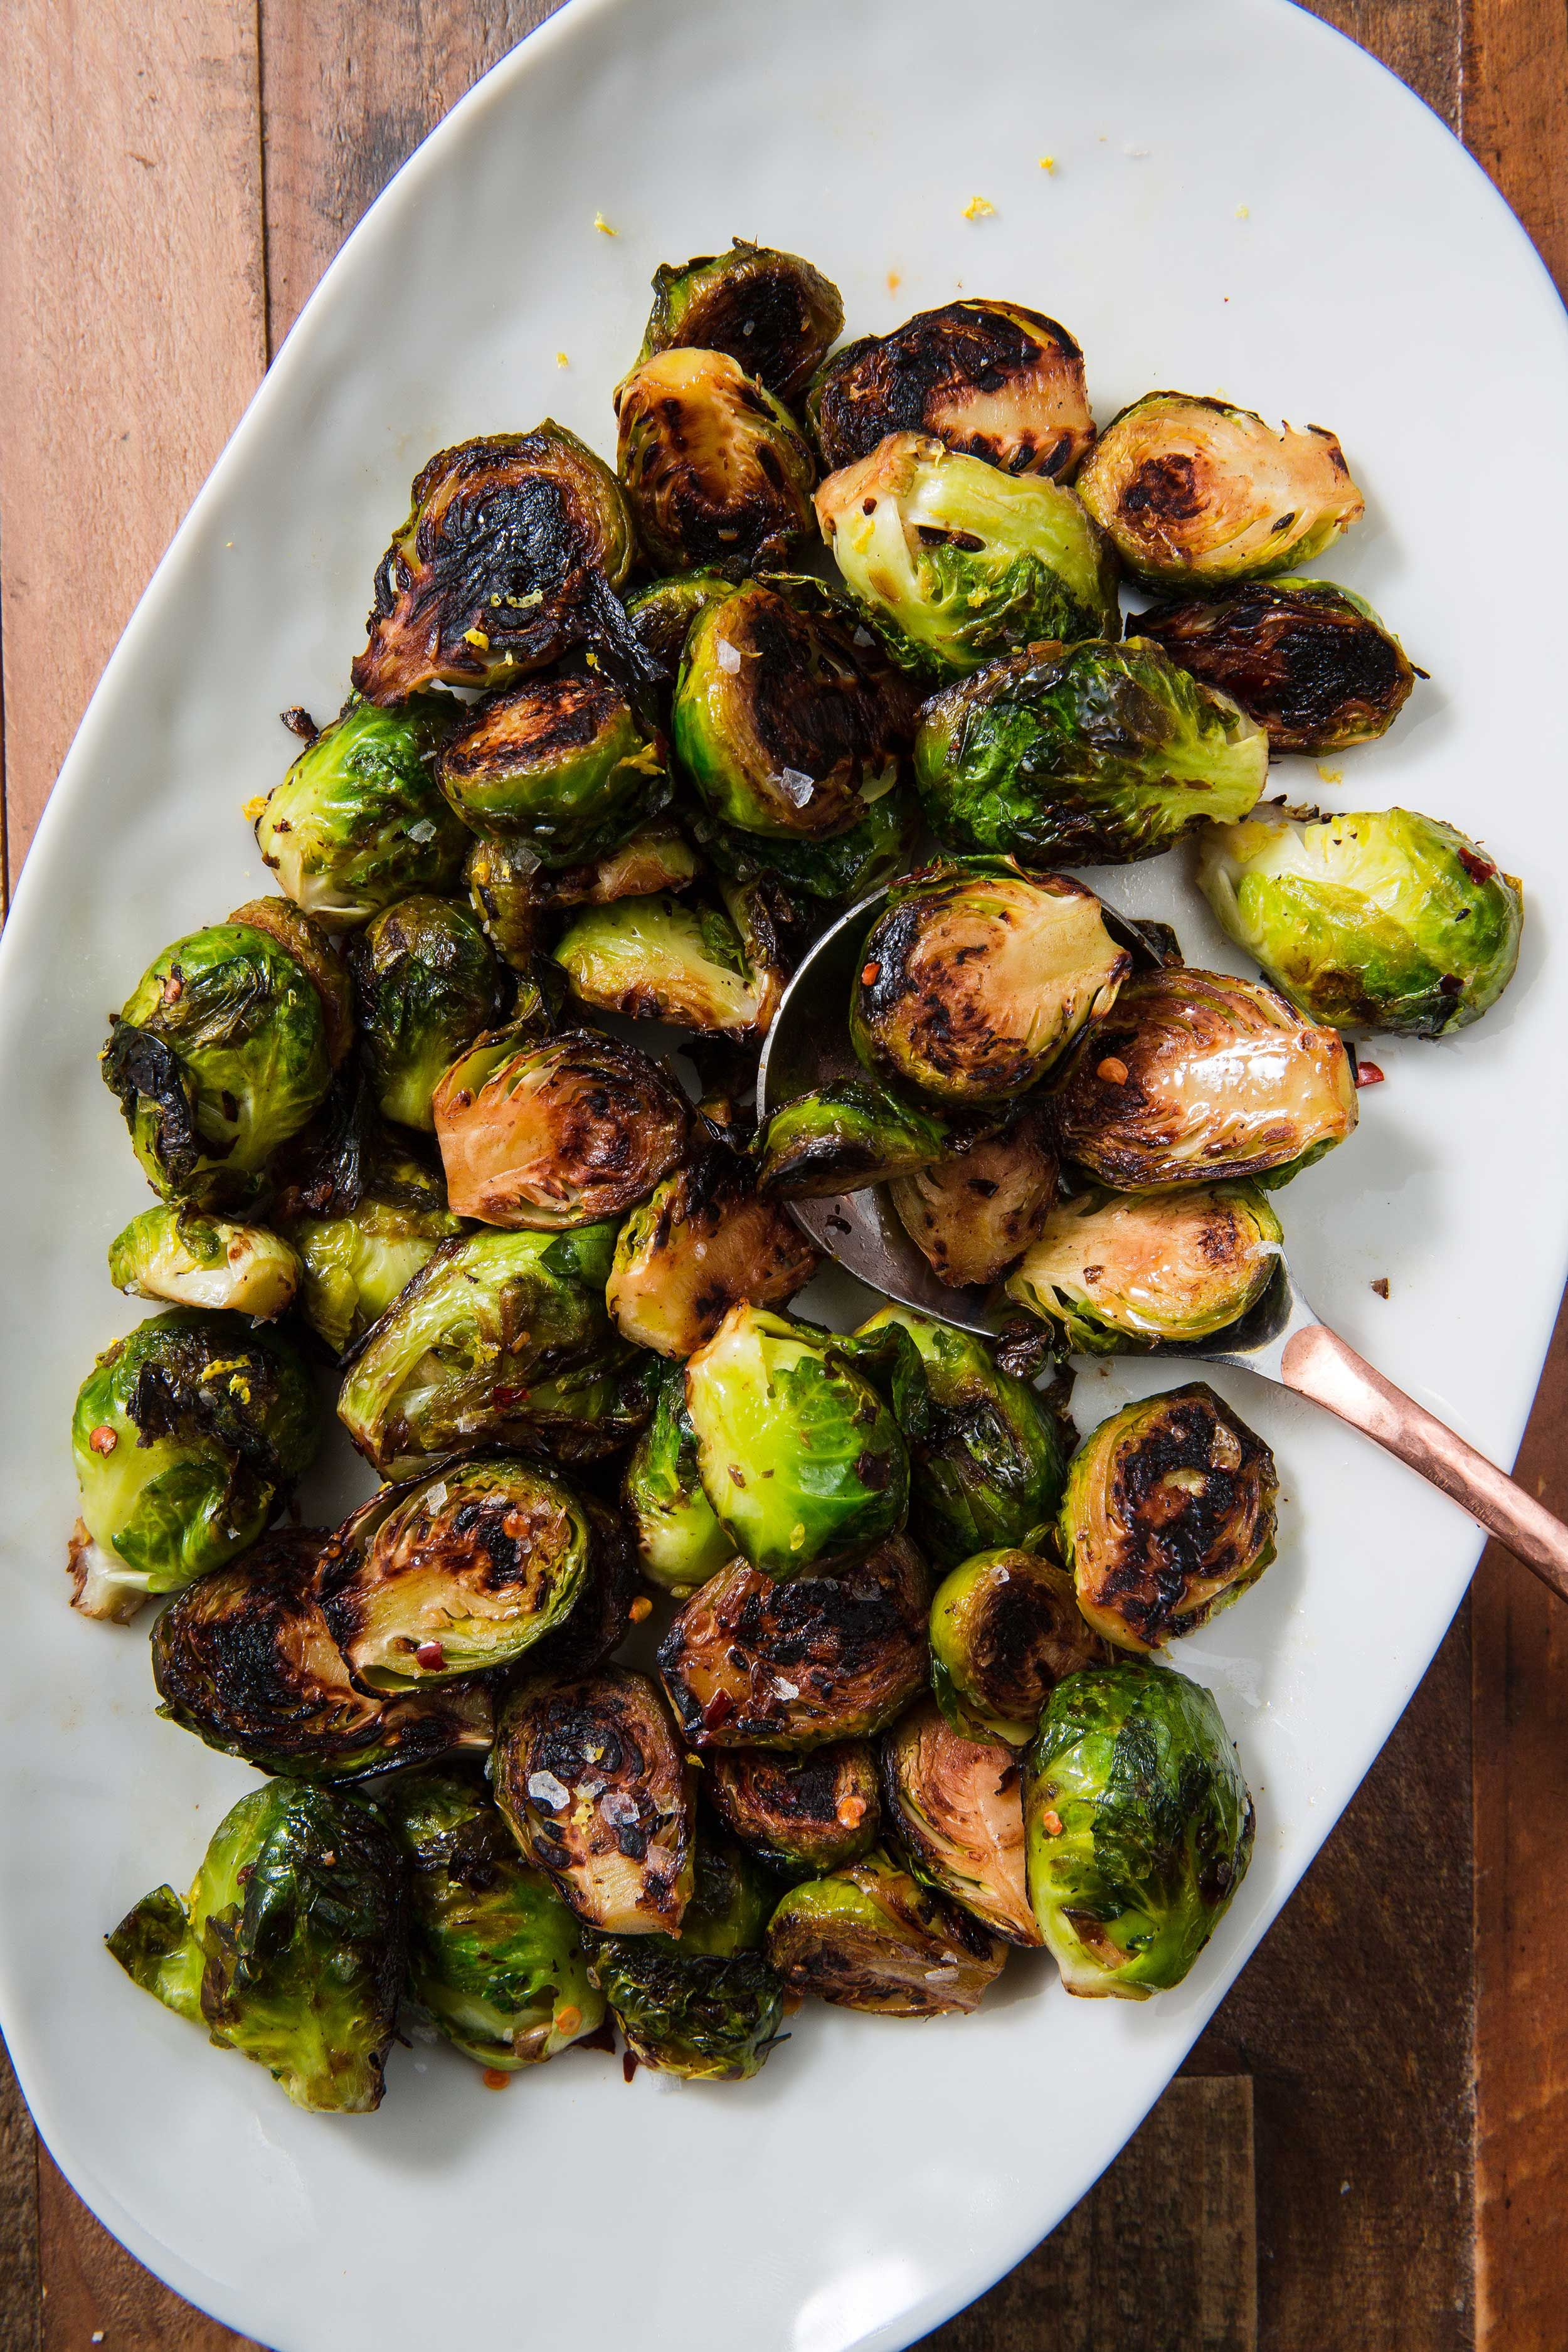 Best way to make brussel sprouts delicious